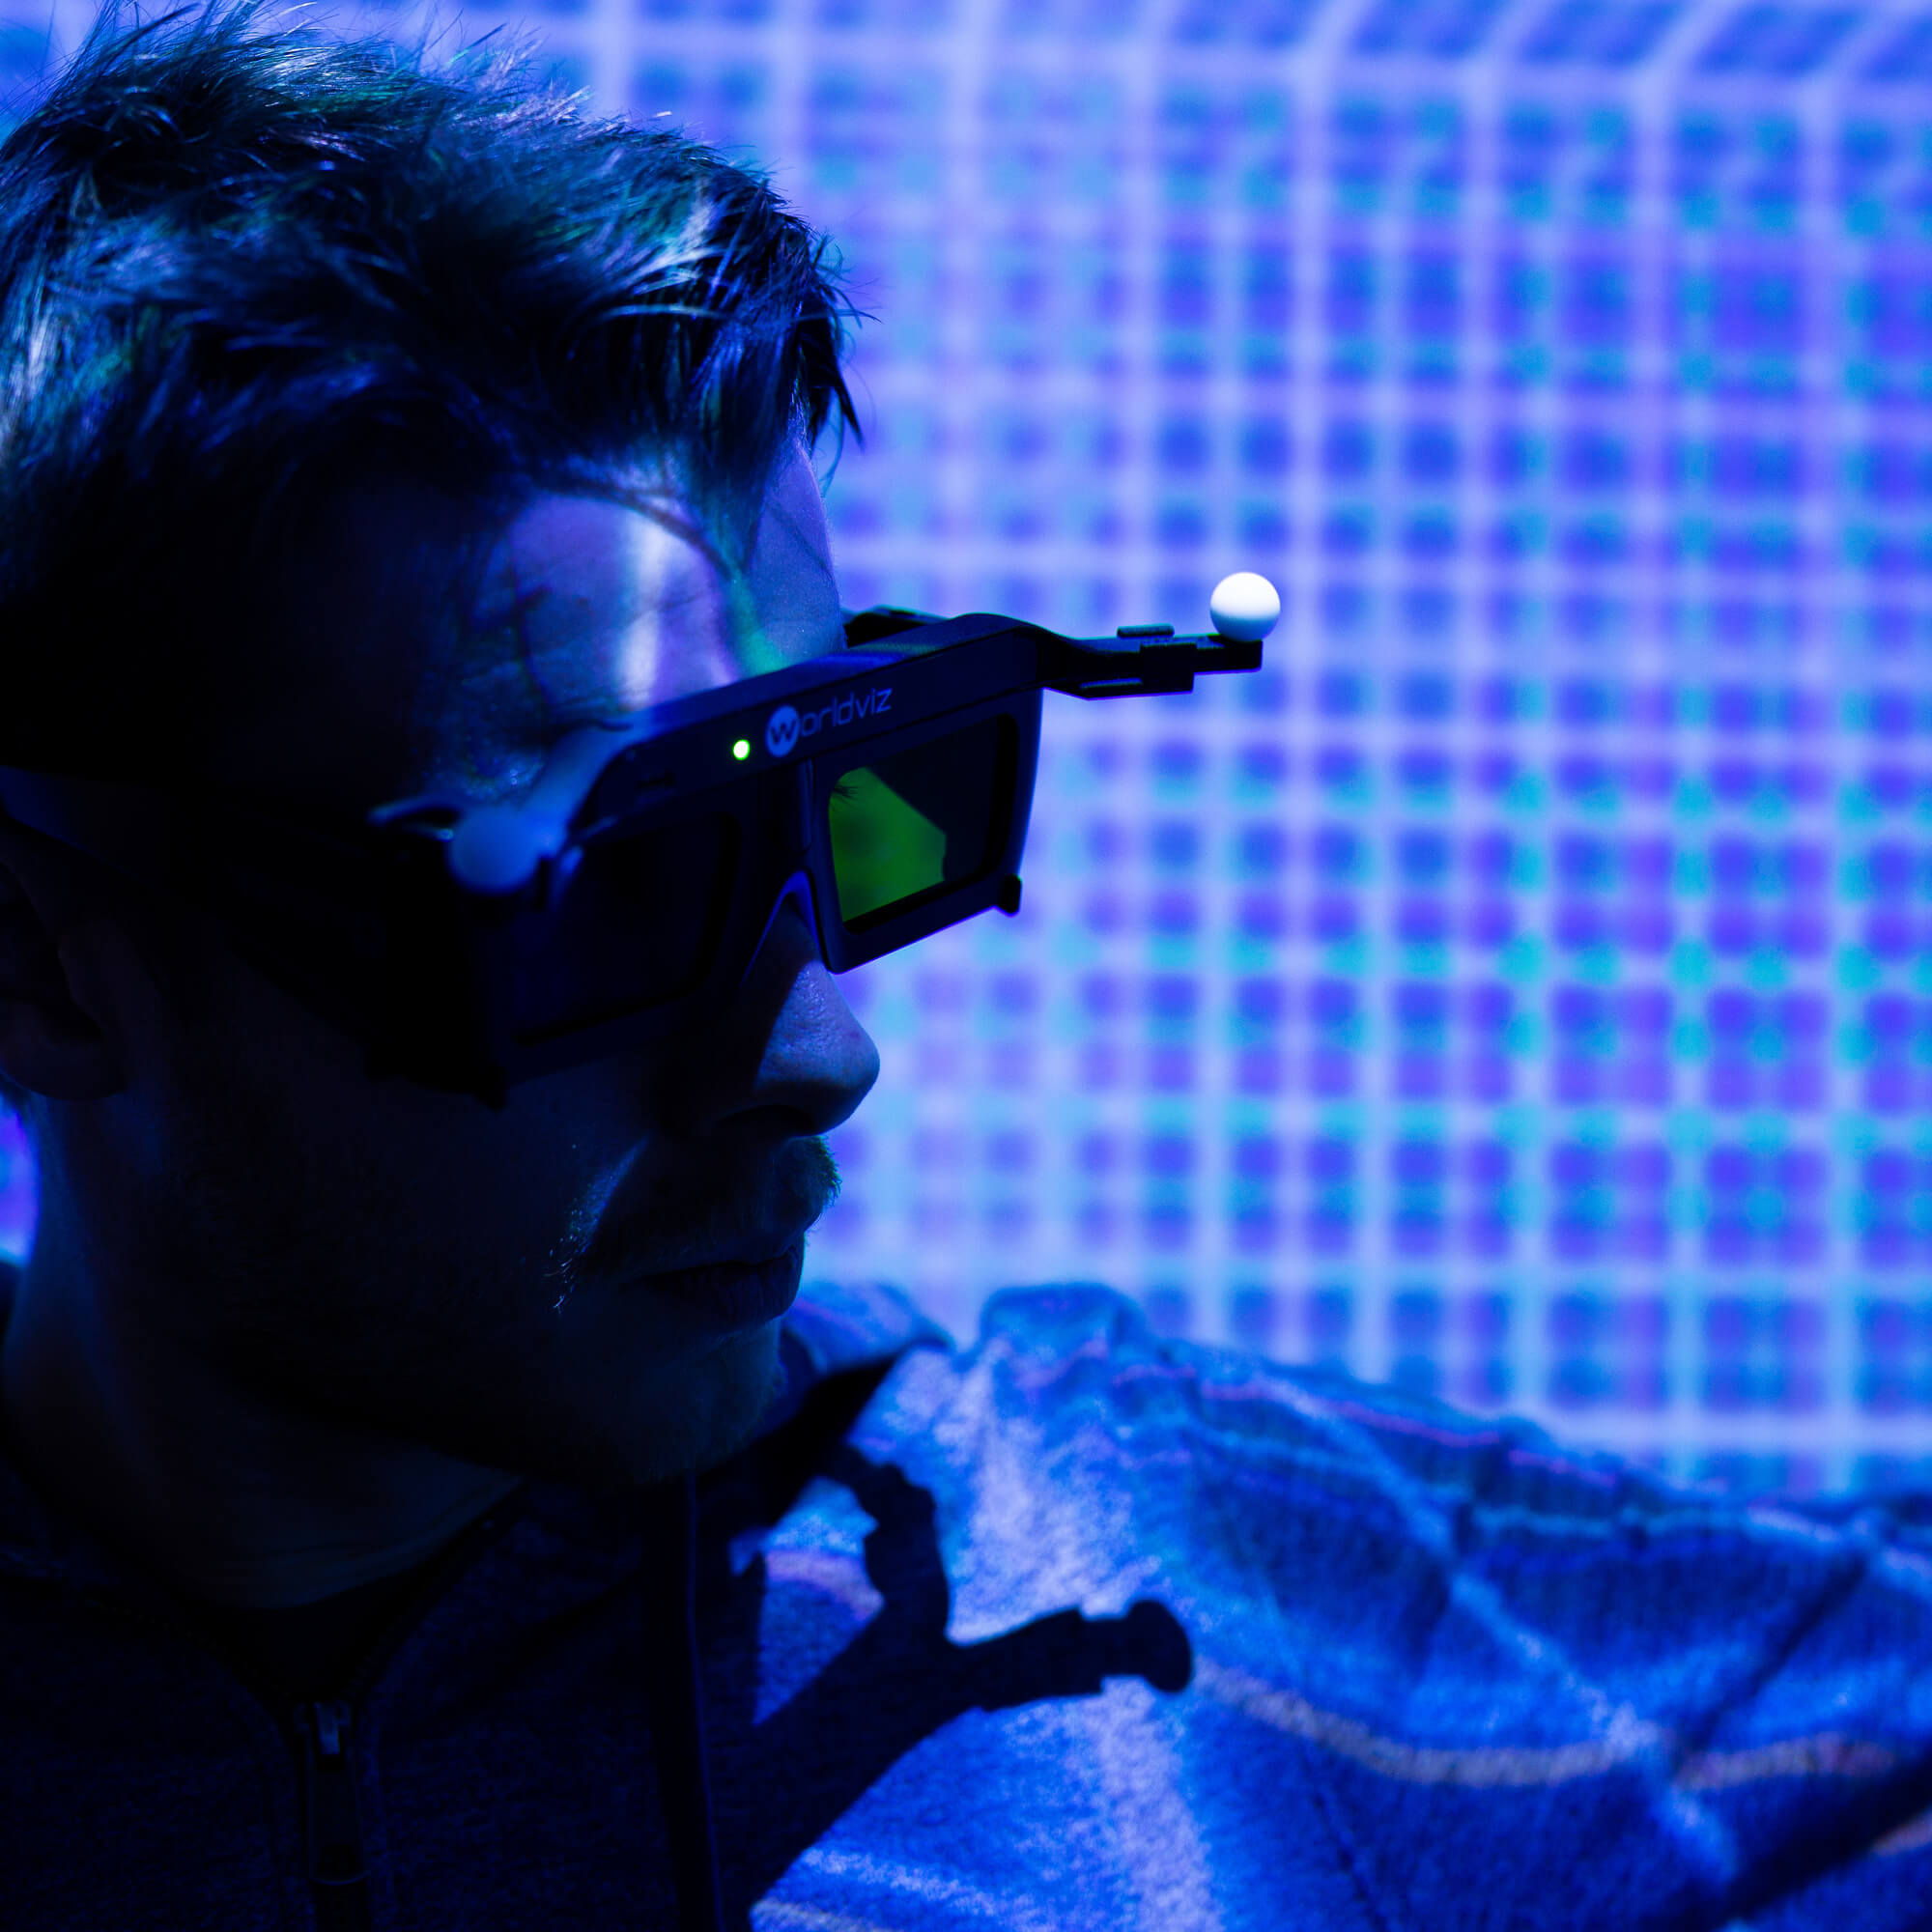 A man in a pair of augmented reality glasses in a room with a grid projected on the walls